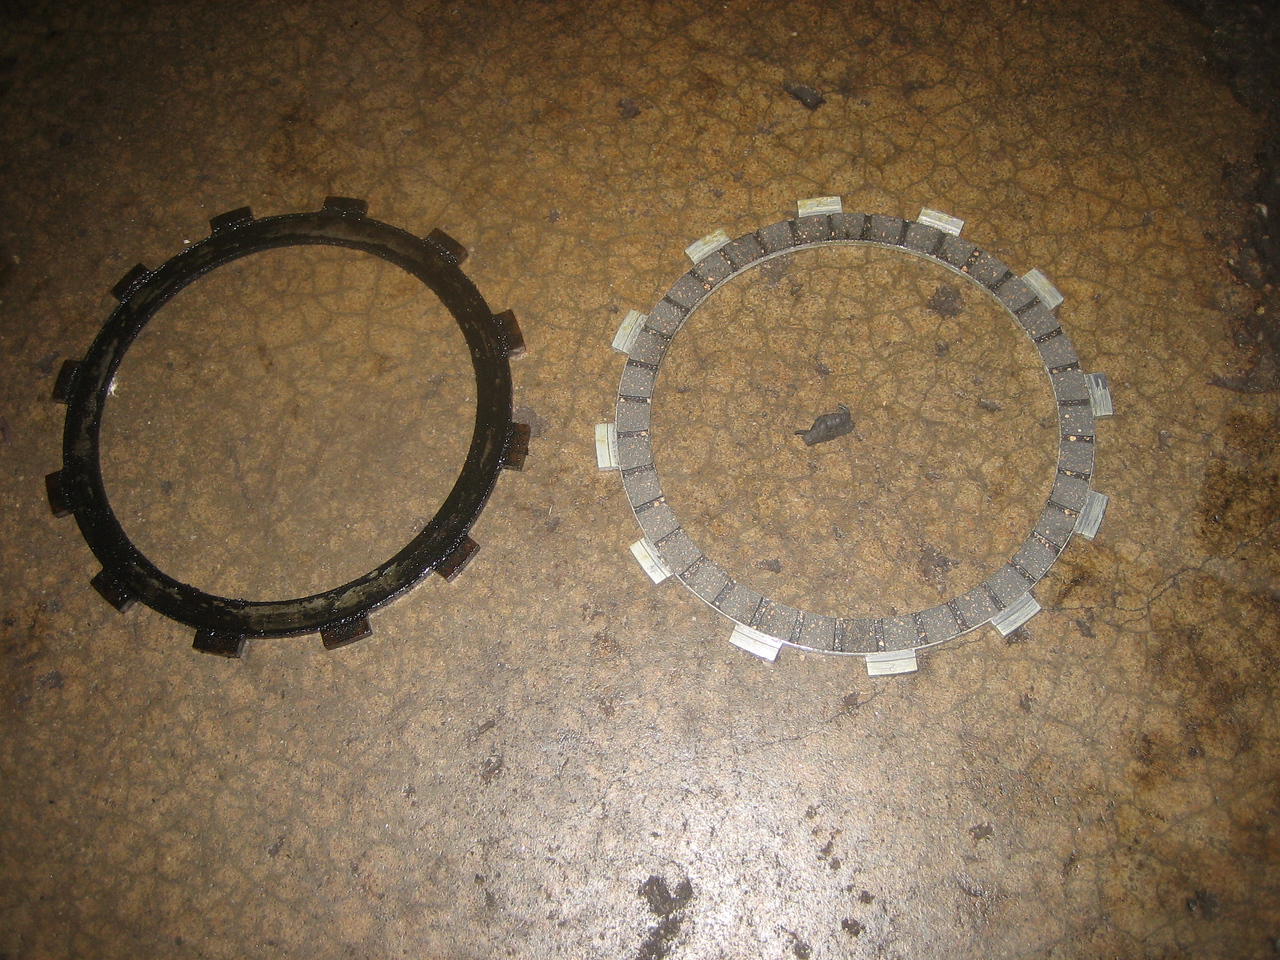 Old friction plate (left) and new friction plate (right)